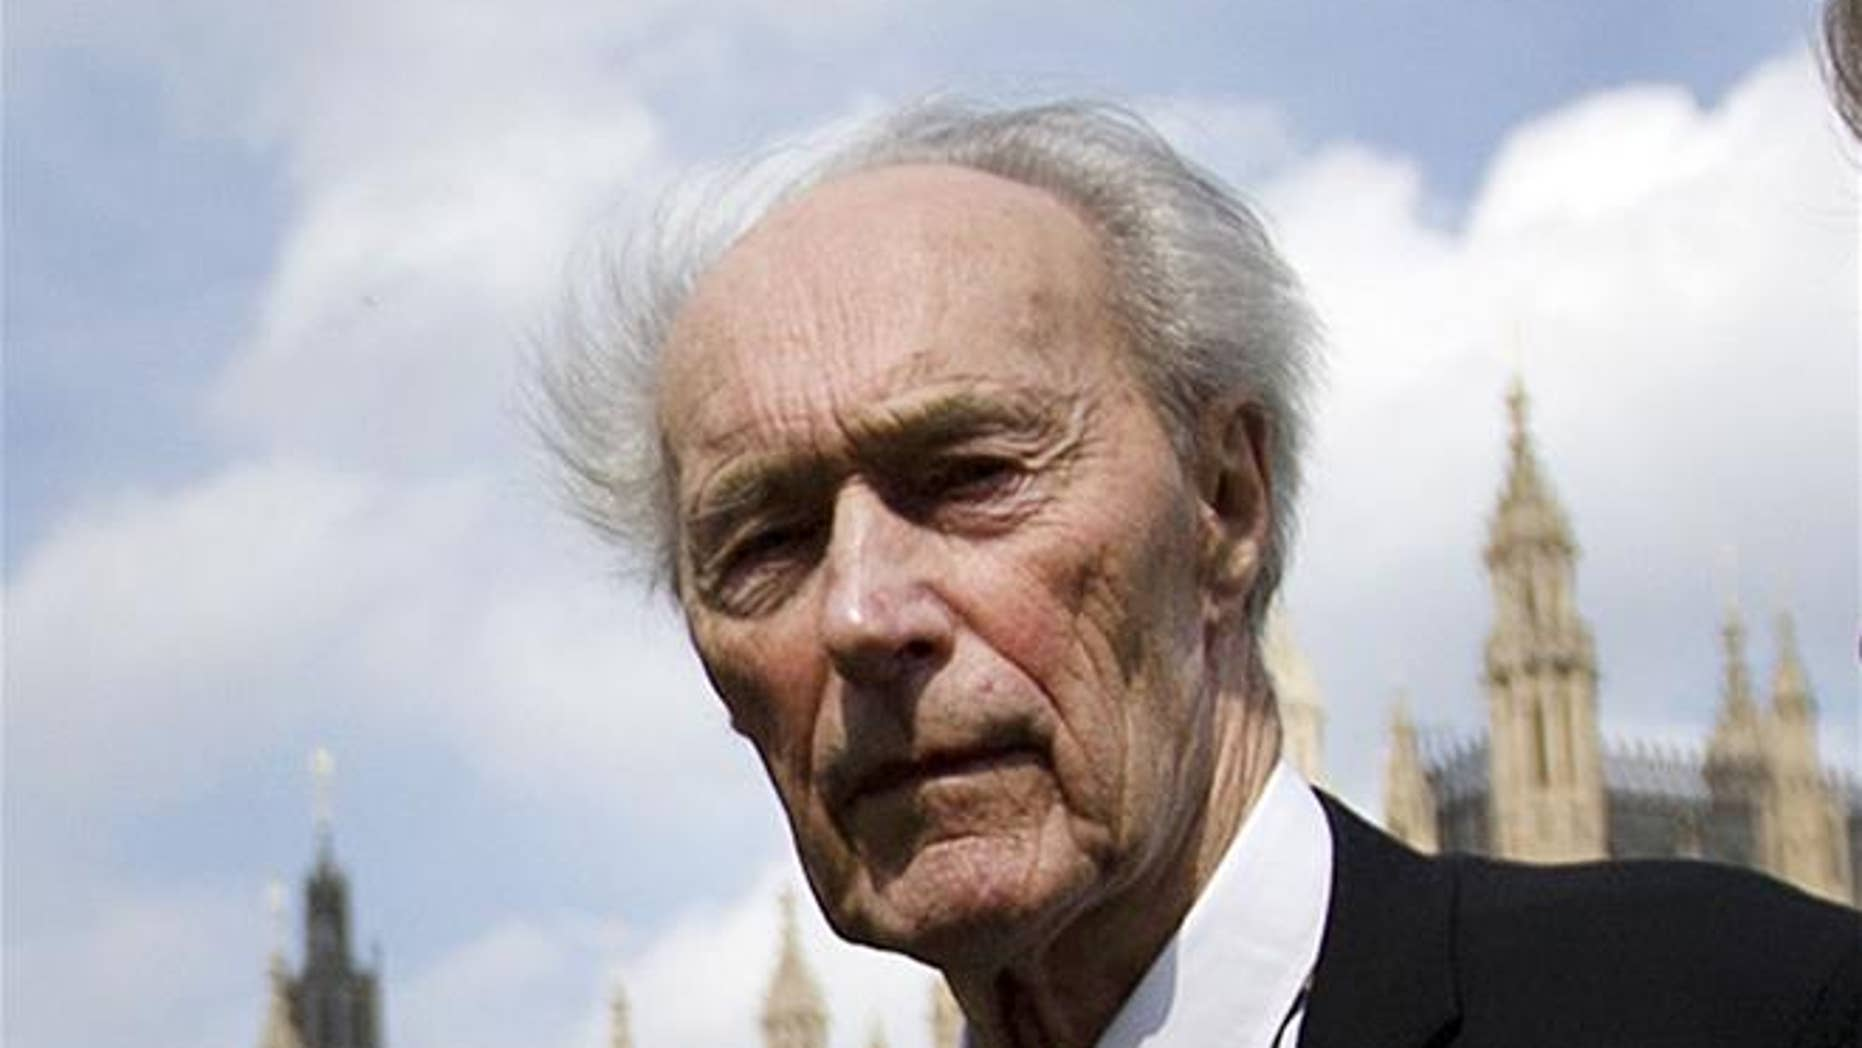 In this April 25, 2013, file photo, Norwegian war hero and resistance fighter Joachim Roenneberg walks in a park near the Palace of Westminster in London.